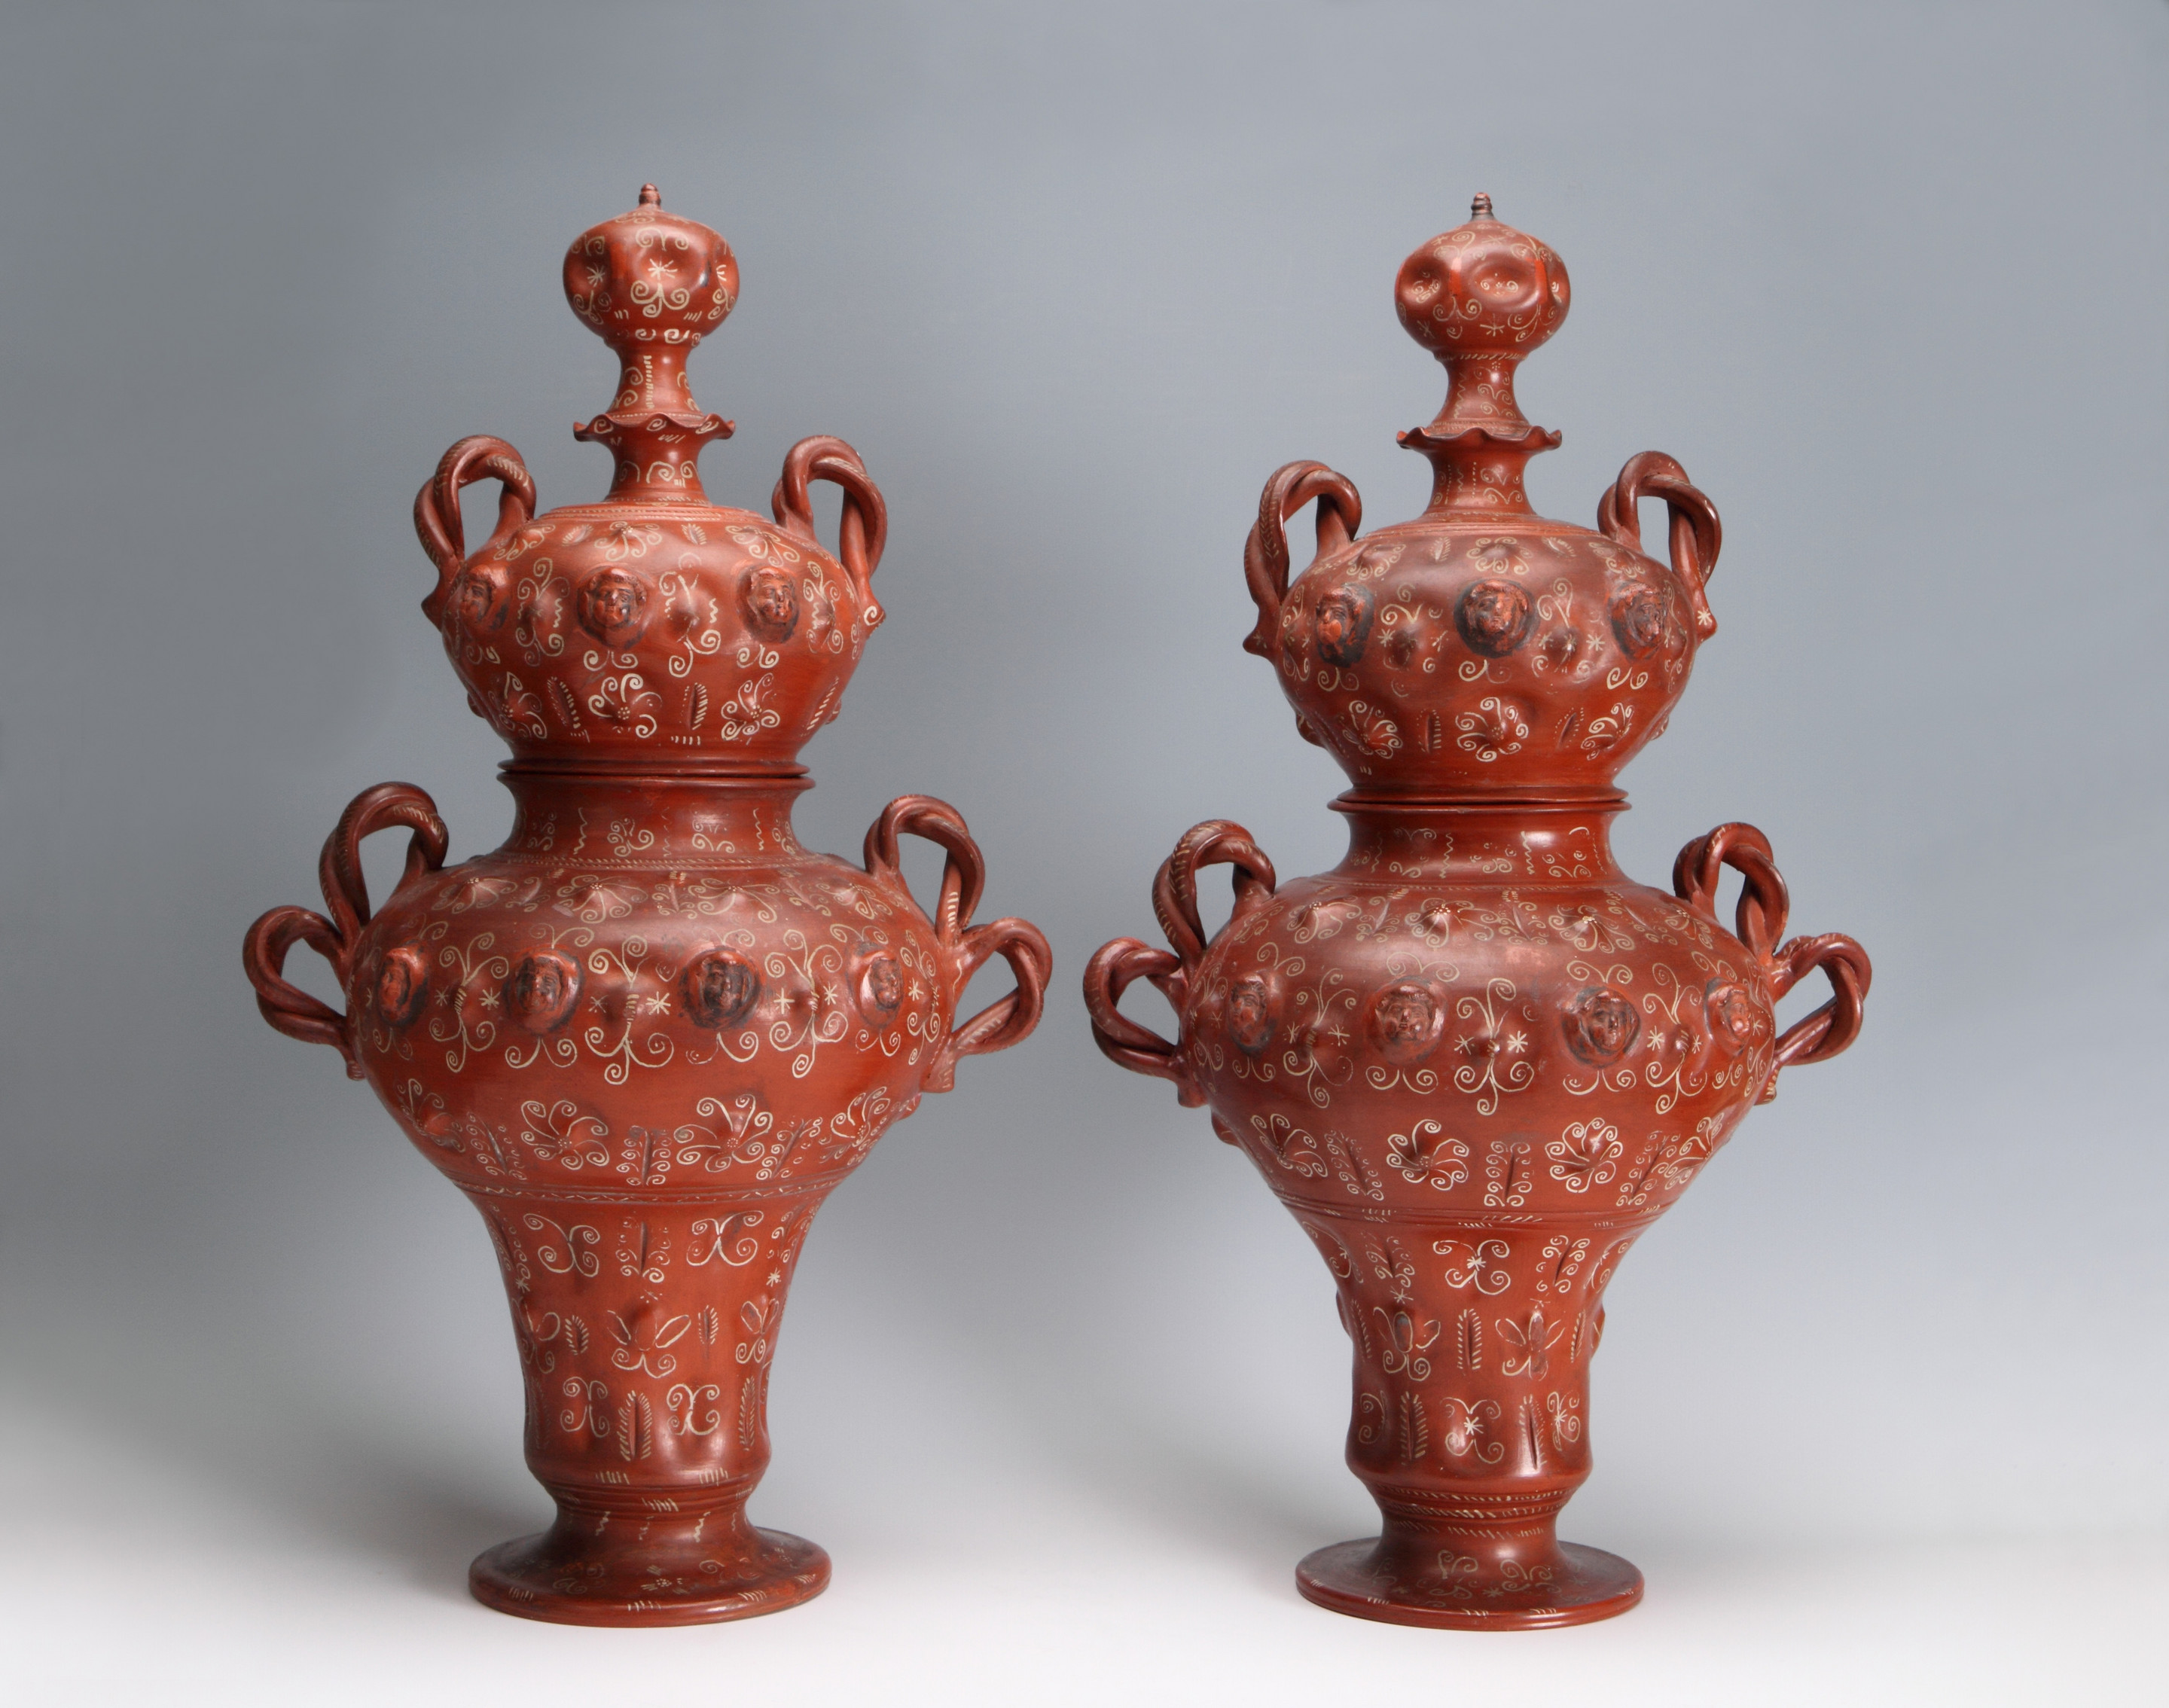 A Pair of Mexican Burnished and Slip-Decorated Vases and Covers, Tonalá, Mexico